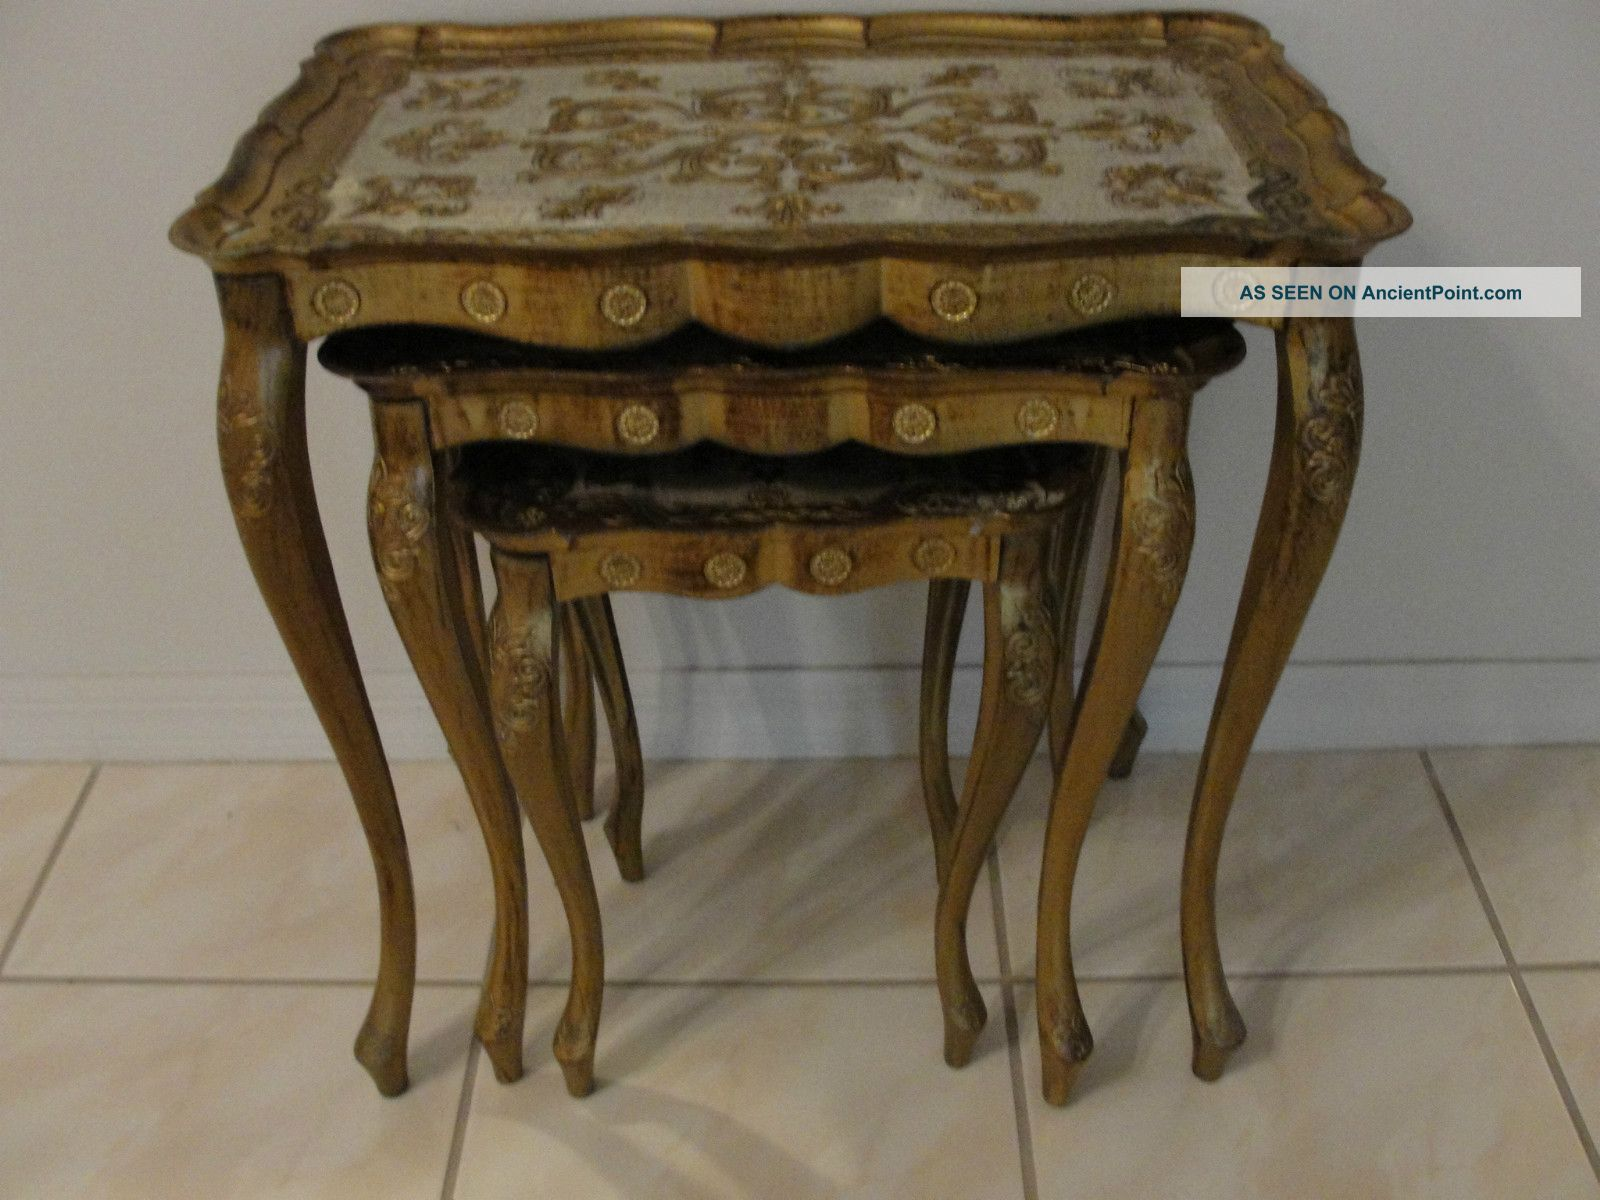 3 Vintage Italian Florentine Toleware Stacking Nesting Tables Italy 3 Gold